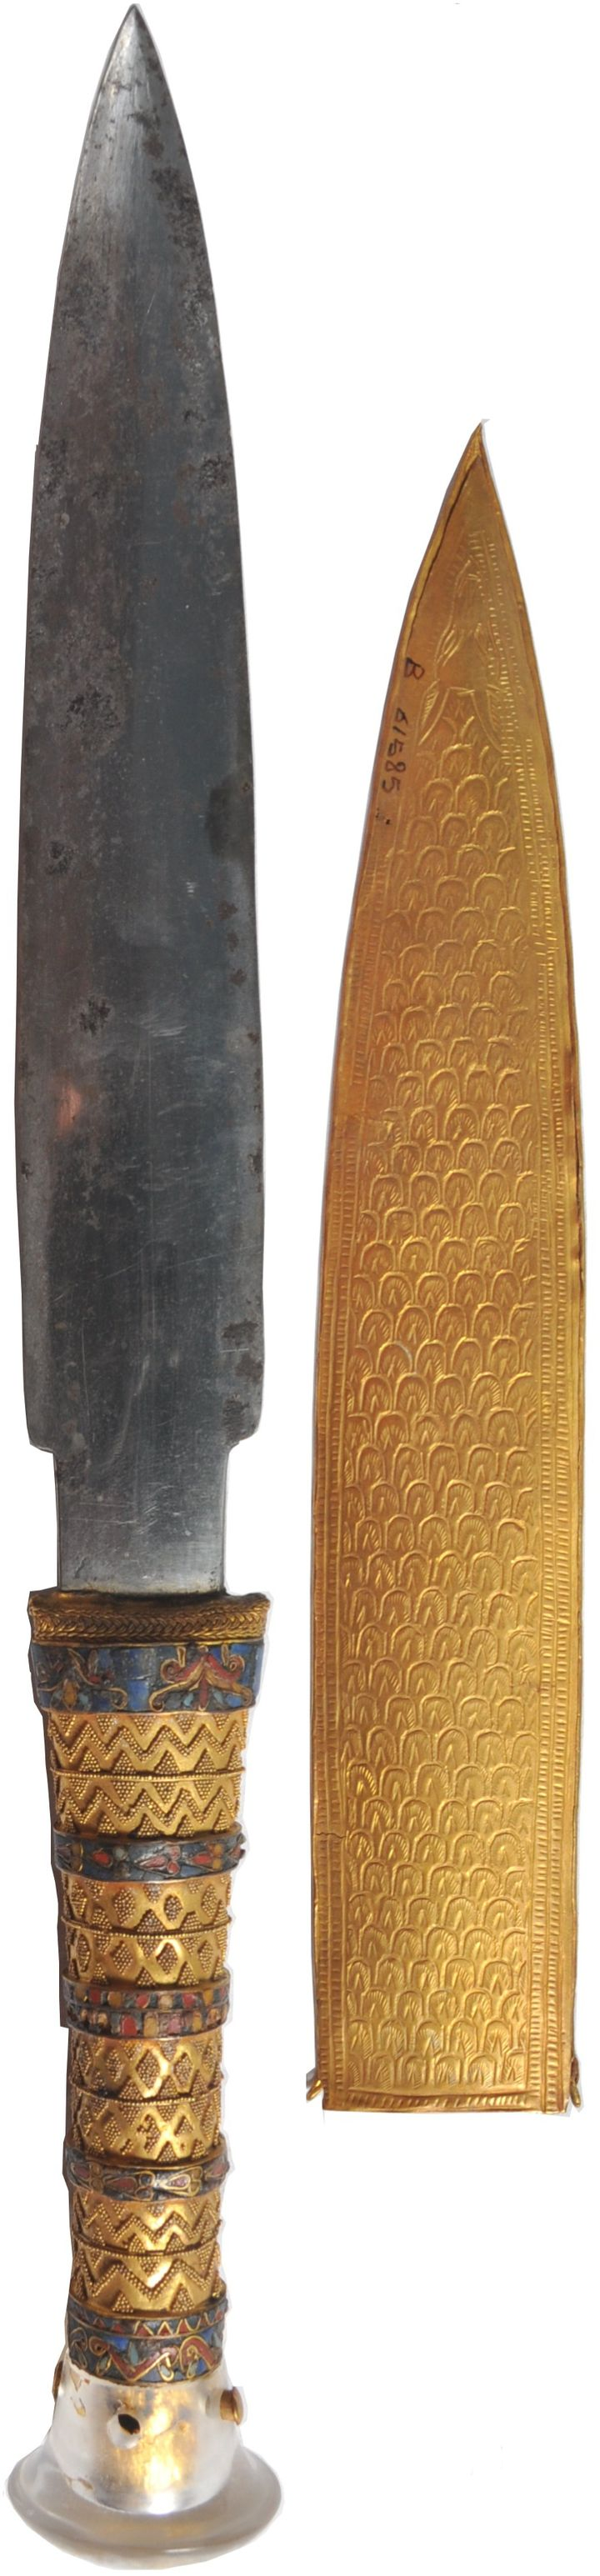 *EGYPT~KingTut's knife,was made w/ iron that came from a meteorite,acc.to an article in the journal Meteoritics+ Planetary Science,pub.online last mo. The dagger,1of2 found in the wrapping of KingTut's mummified body.The1st knife has a blade of gold,while the iron dagger has a gold handle rock crystal pommel+jackal-decorated sheath.The iron knife puzzled researchers for91yrs, as ironwork was rare in ancientEgypt. Being more than3,300yrs old,it shows no signs of rust,according toThe Guardian.